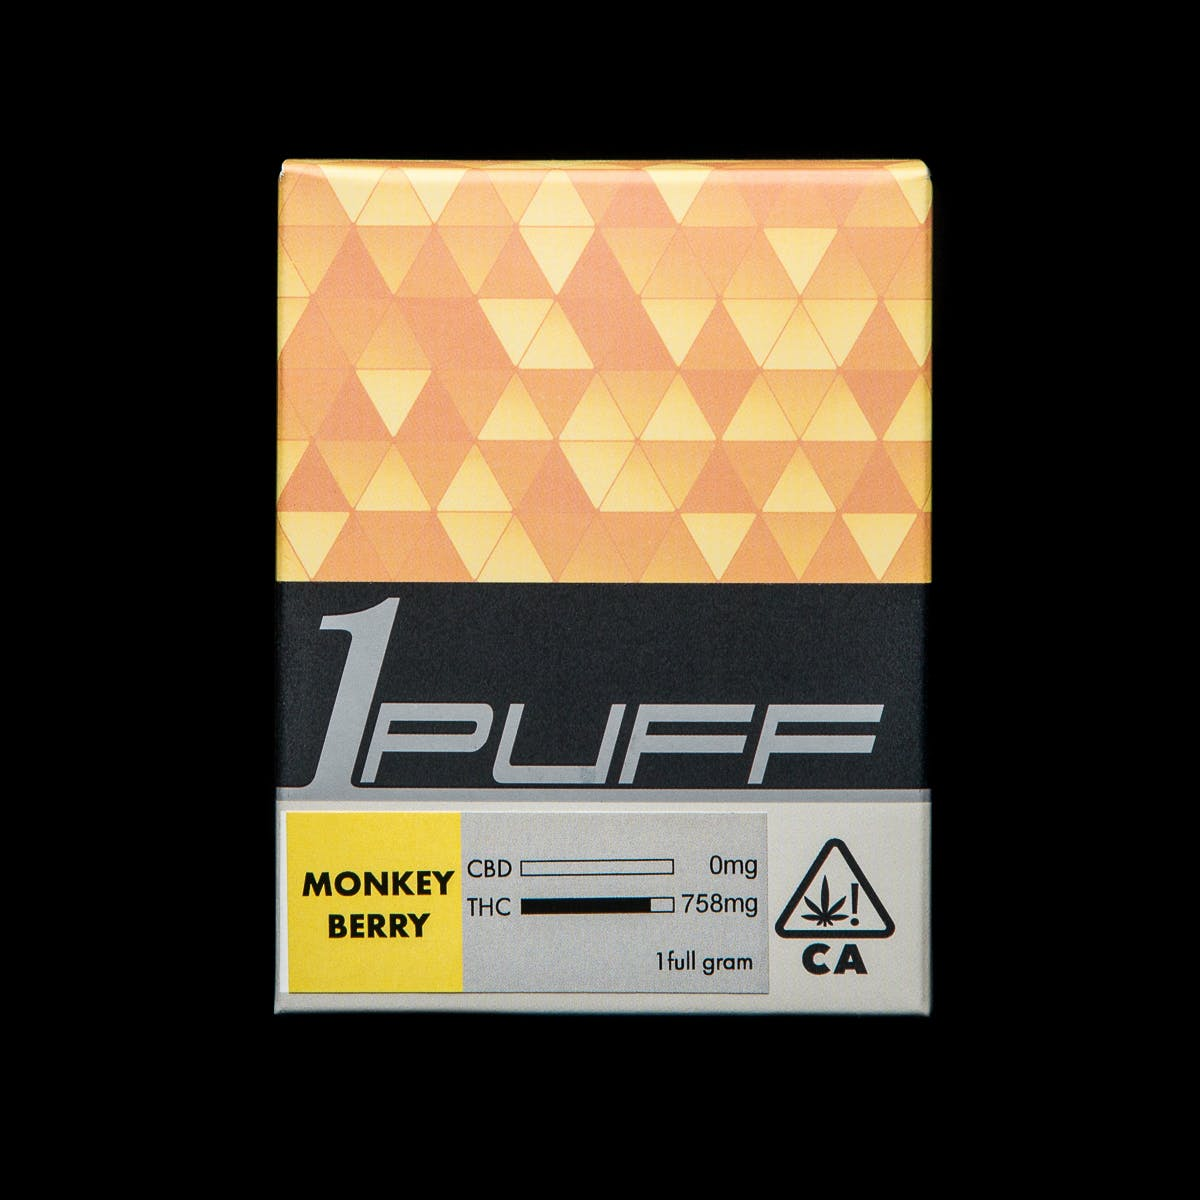 1 PUFF   Featured Products & Details   Weedmaps